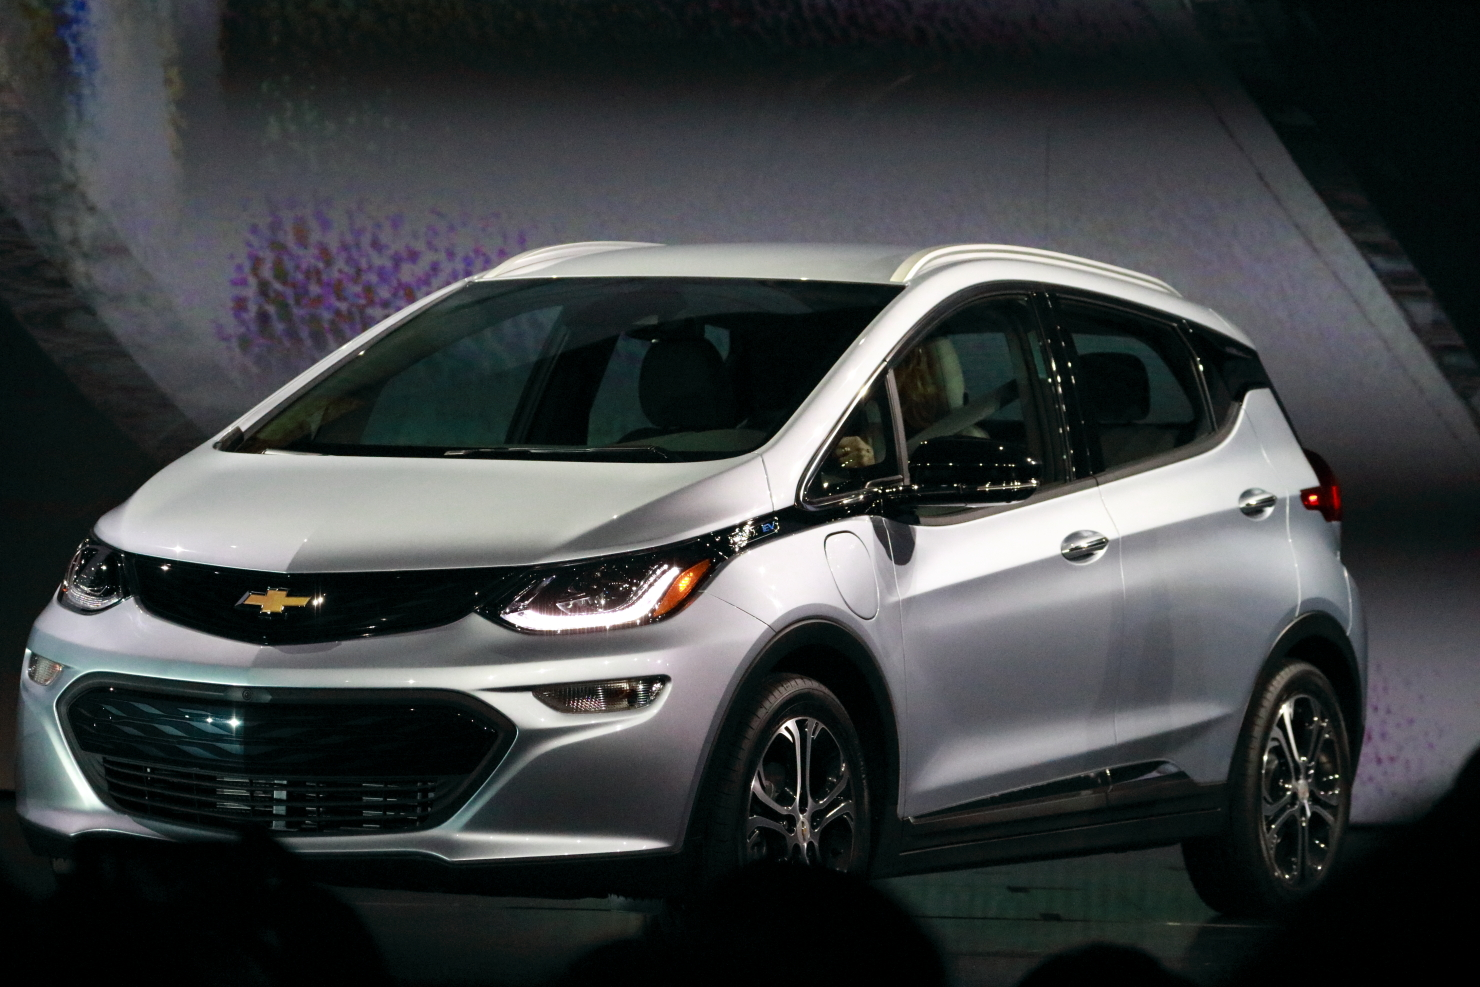 The Chevrolet Bolt EV, an all-electric car introduced at CES 2016. (photo by João-Pierre S. Ruth)